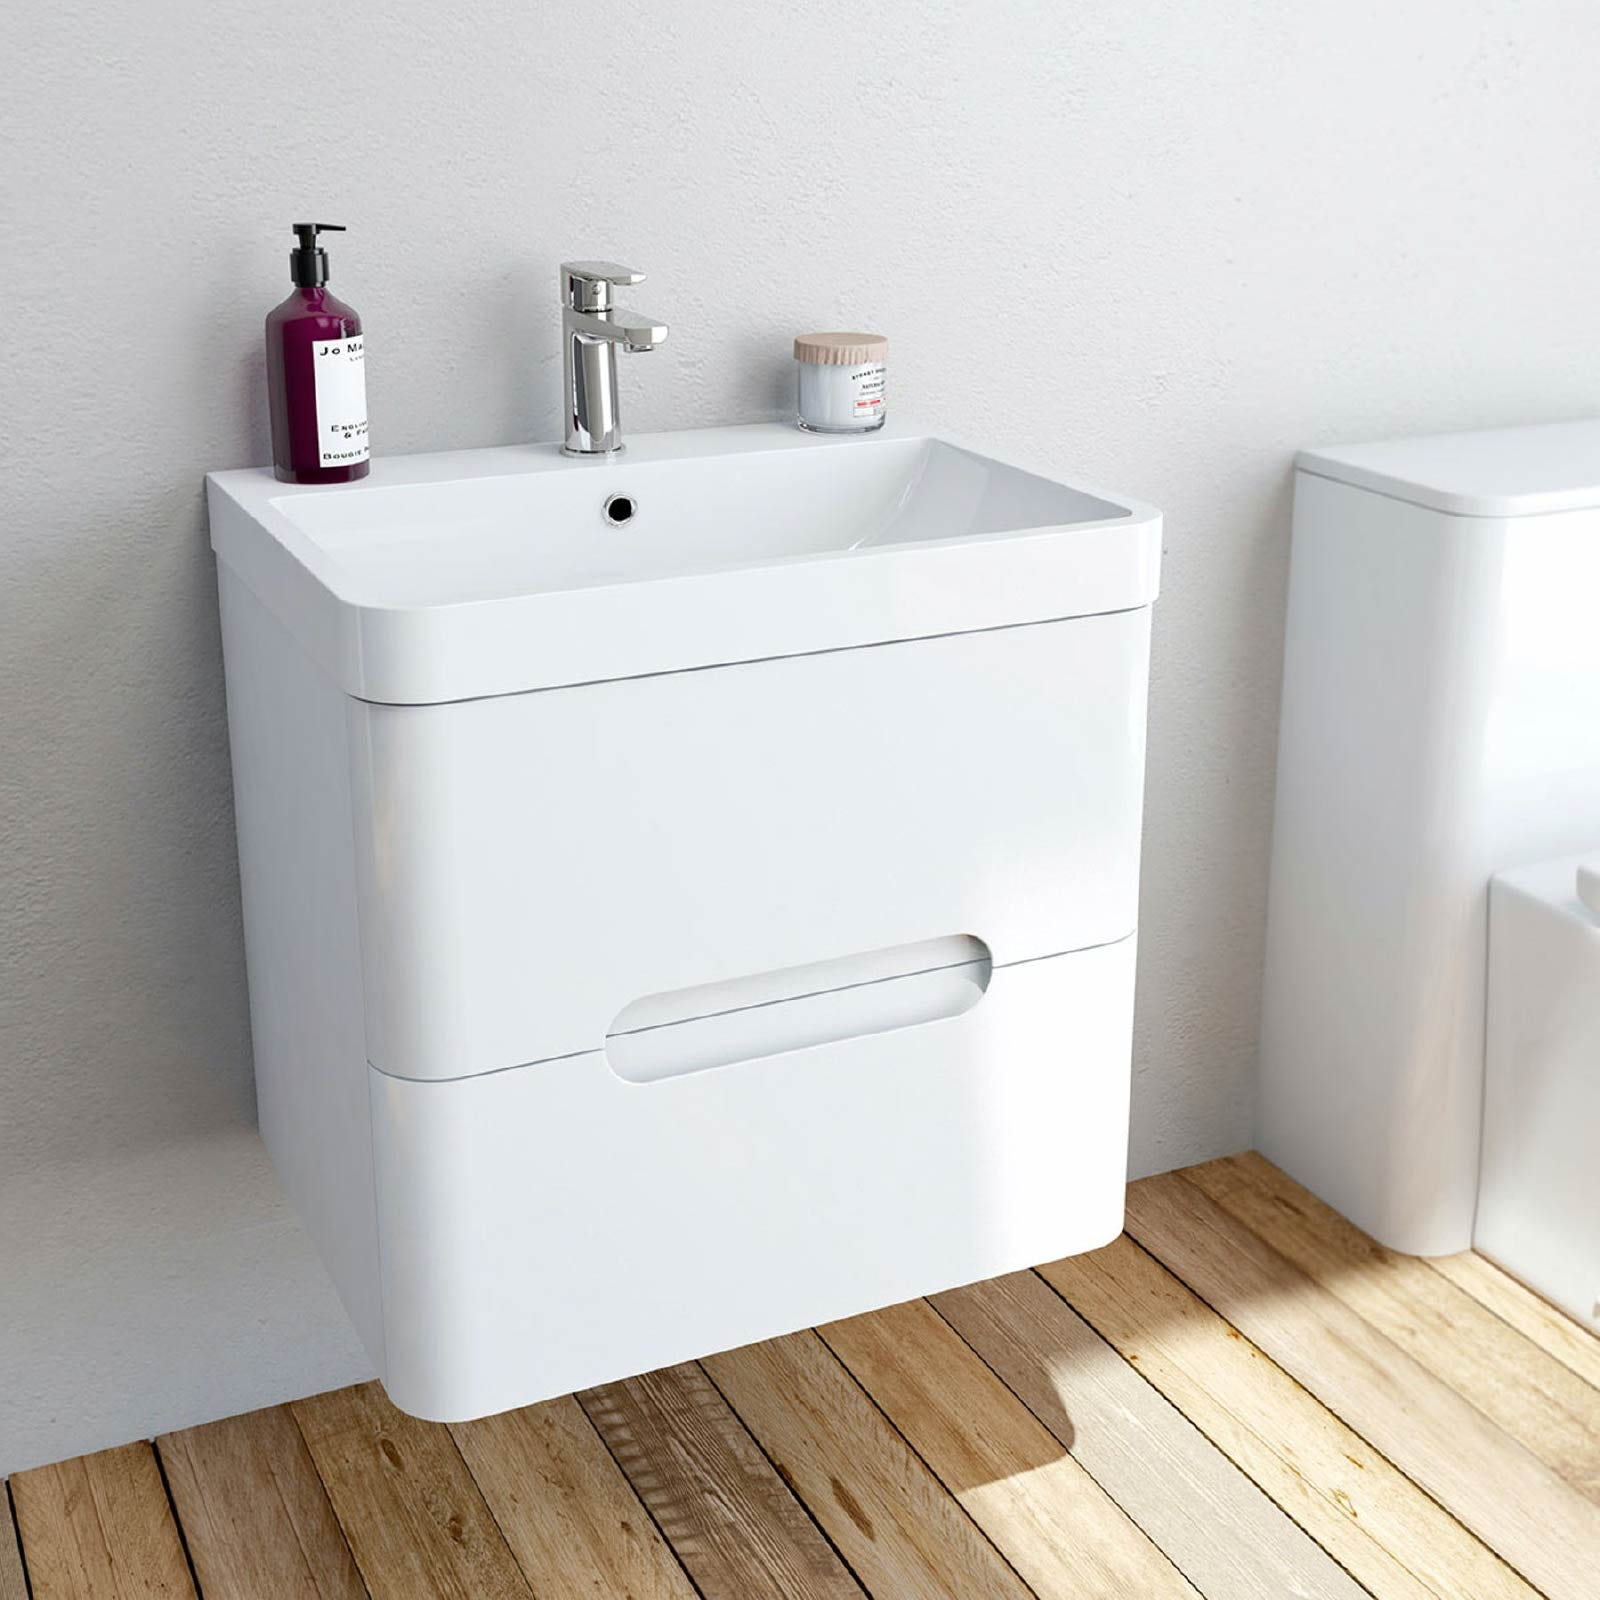 Stylish wall hung vanity units